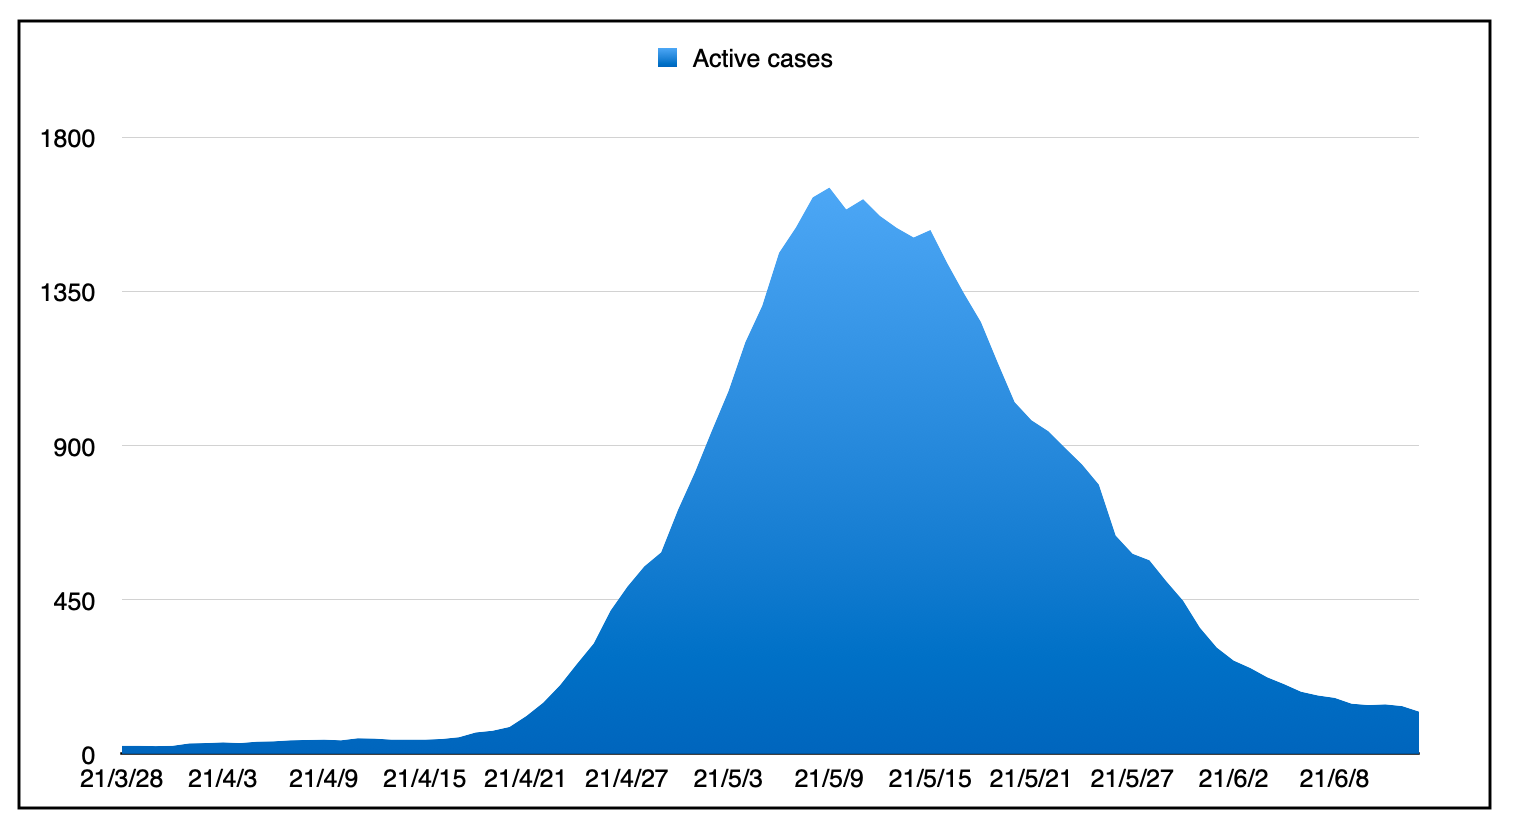 A mountain shaped graph of the infection rates since March 28.